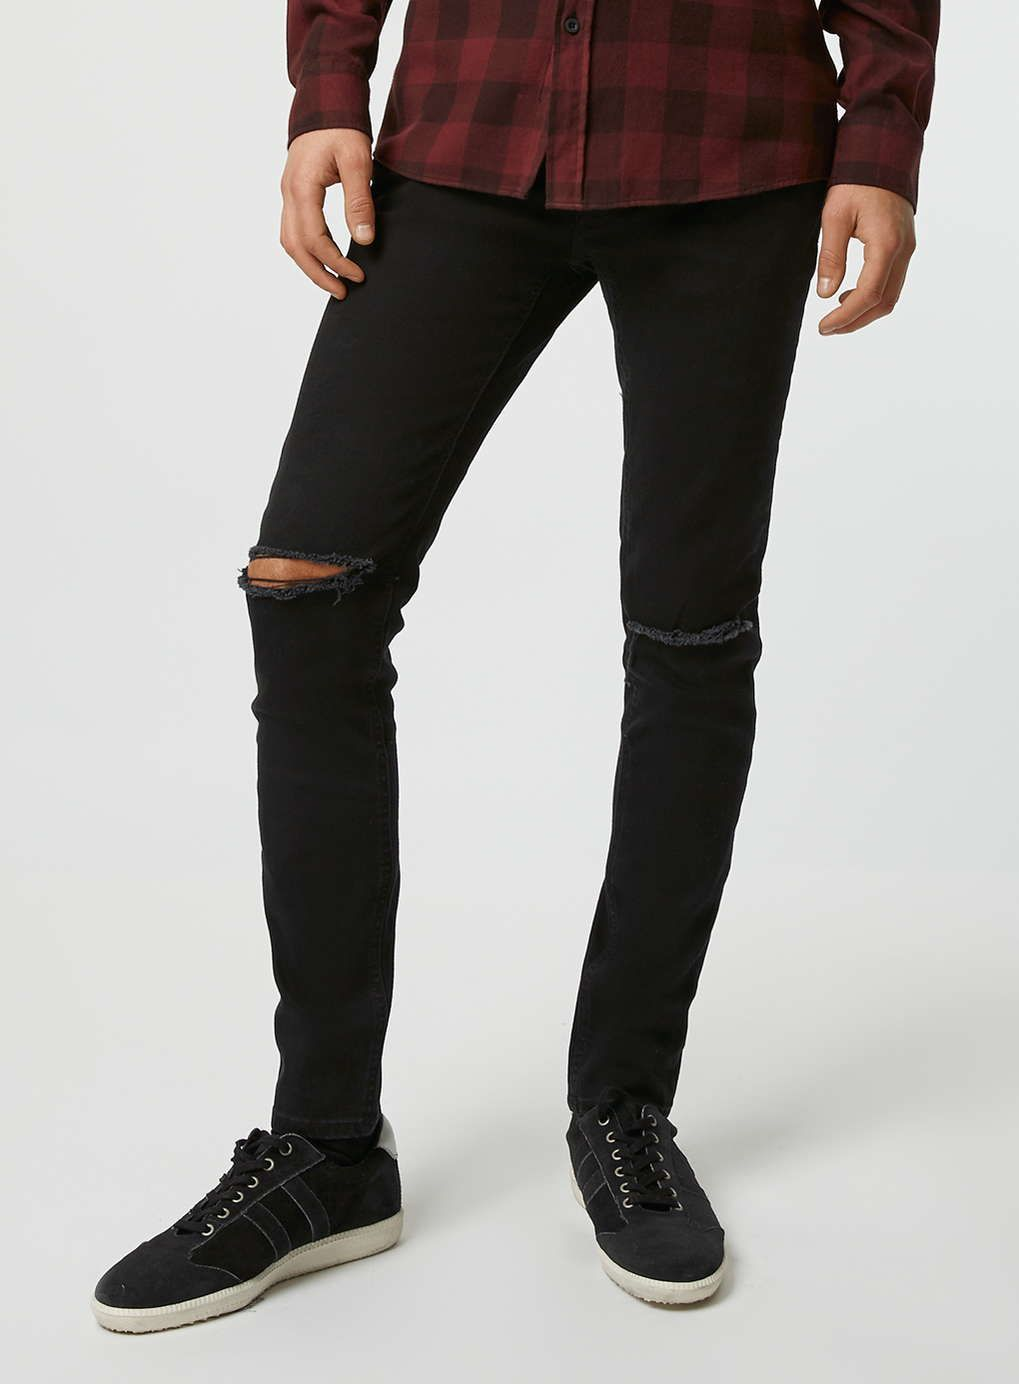 Black Ripped Knee Stretch Skinny Fit Jeans | Skinny fit, Skinny ...